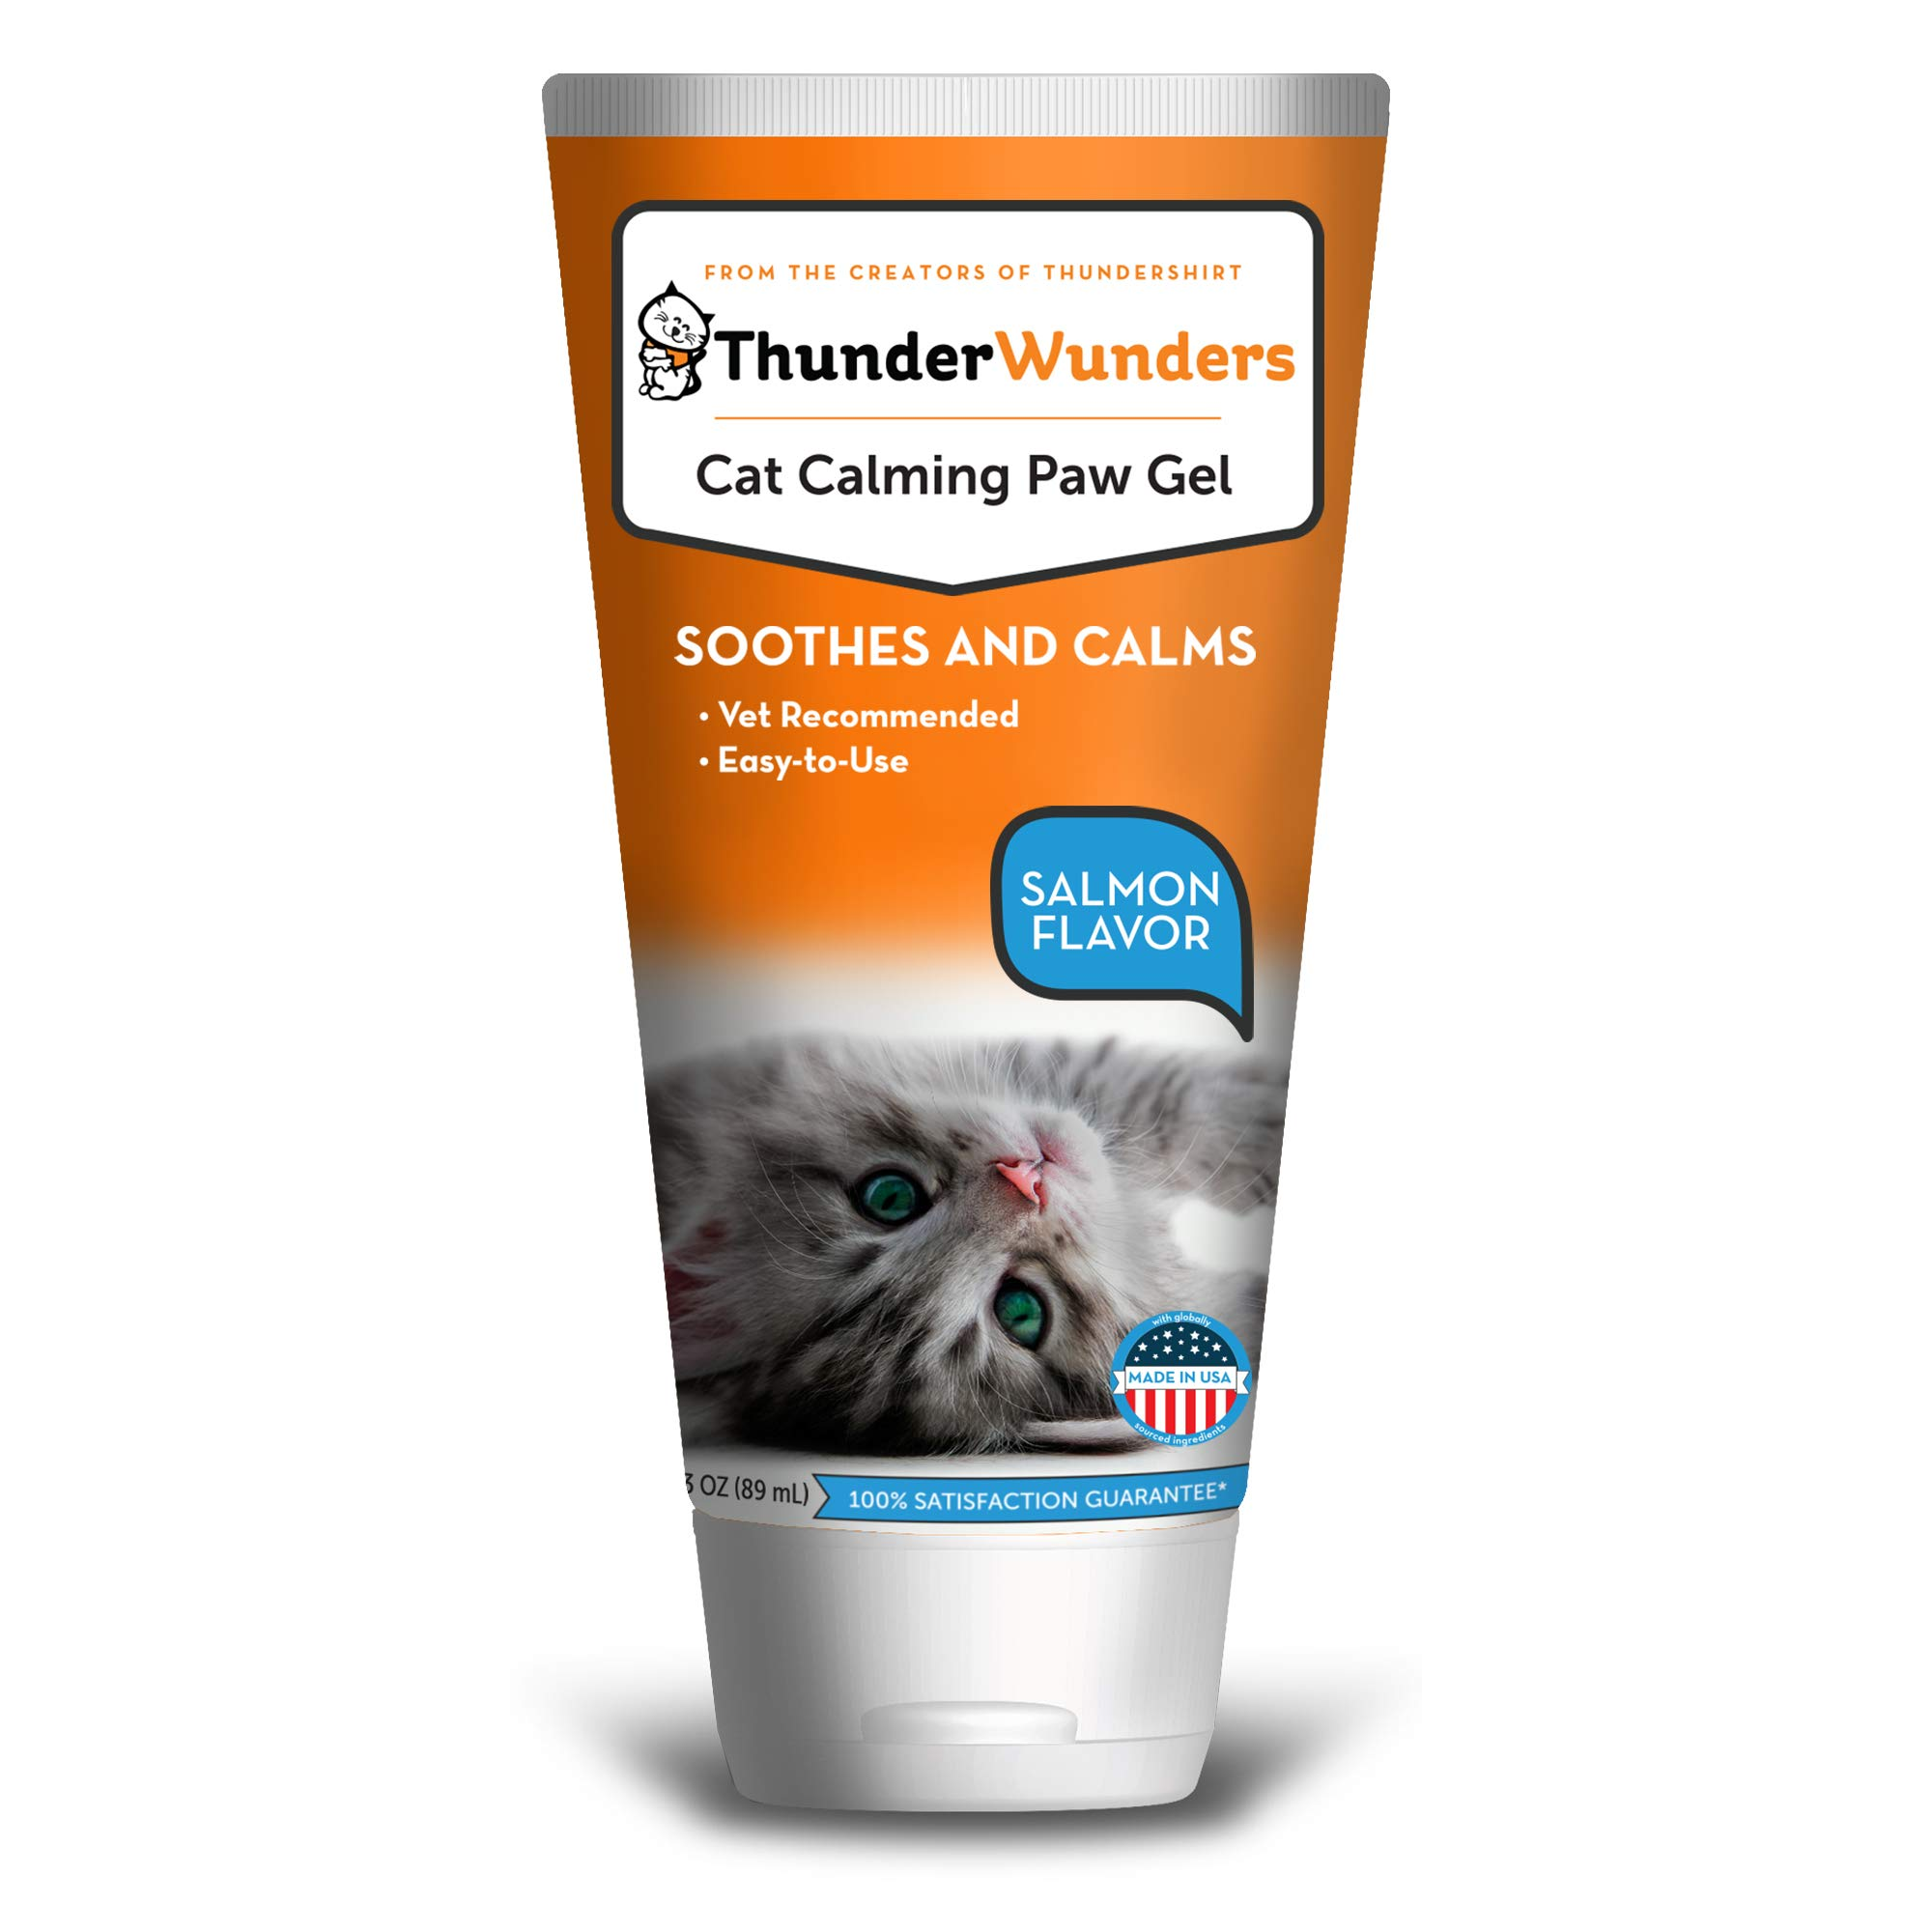 ThunderWunders Cat Calming Paw Gel | Vet Recommended to Help Reduce Situational Anxiety | Perfect for Vet Visits, Traveling, Visitors & More